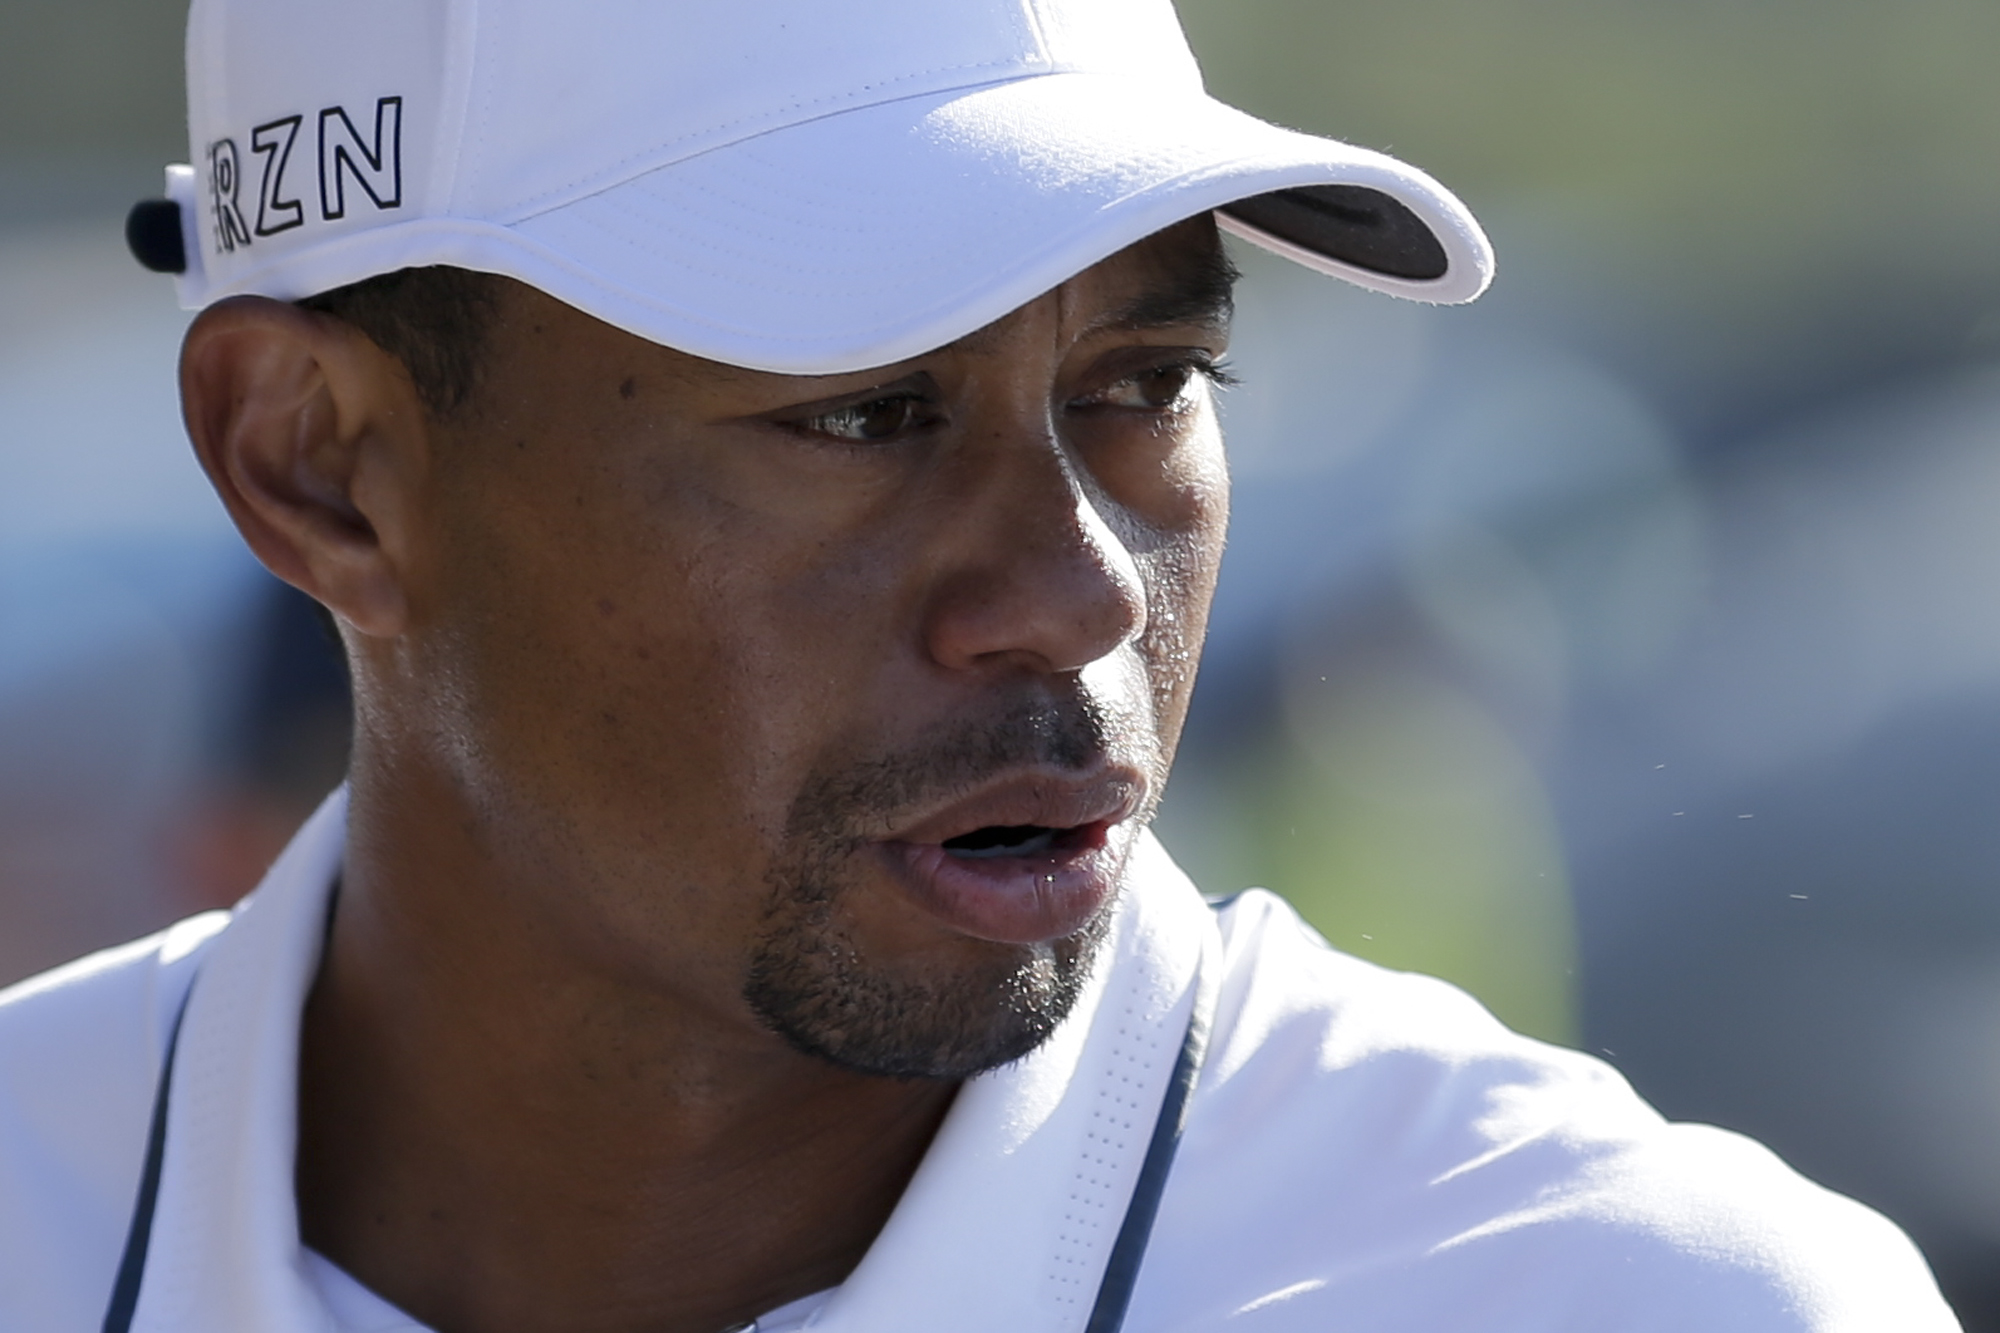 Tiger Woods looks back while loading his car after withdrawing in the first round of the Farmers Insurance Open golf tournament Thursday, Feb. 5, 2015, in San Diego. (AP Photo/Gregory